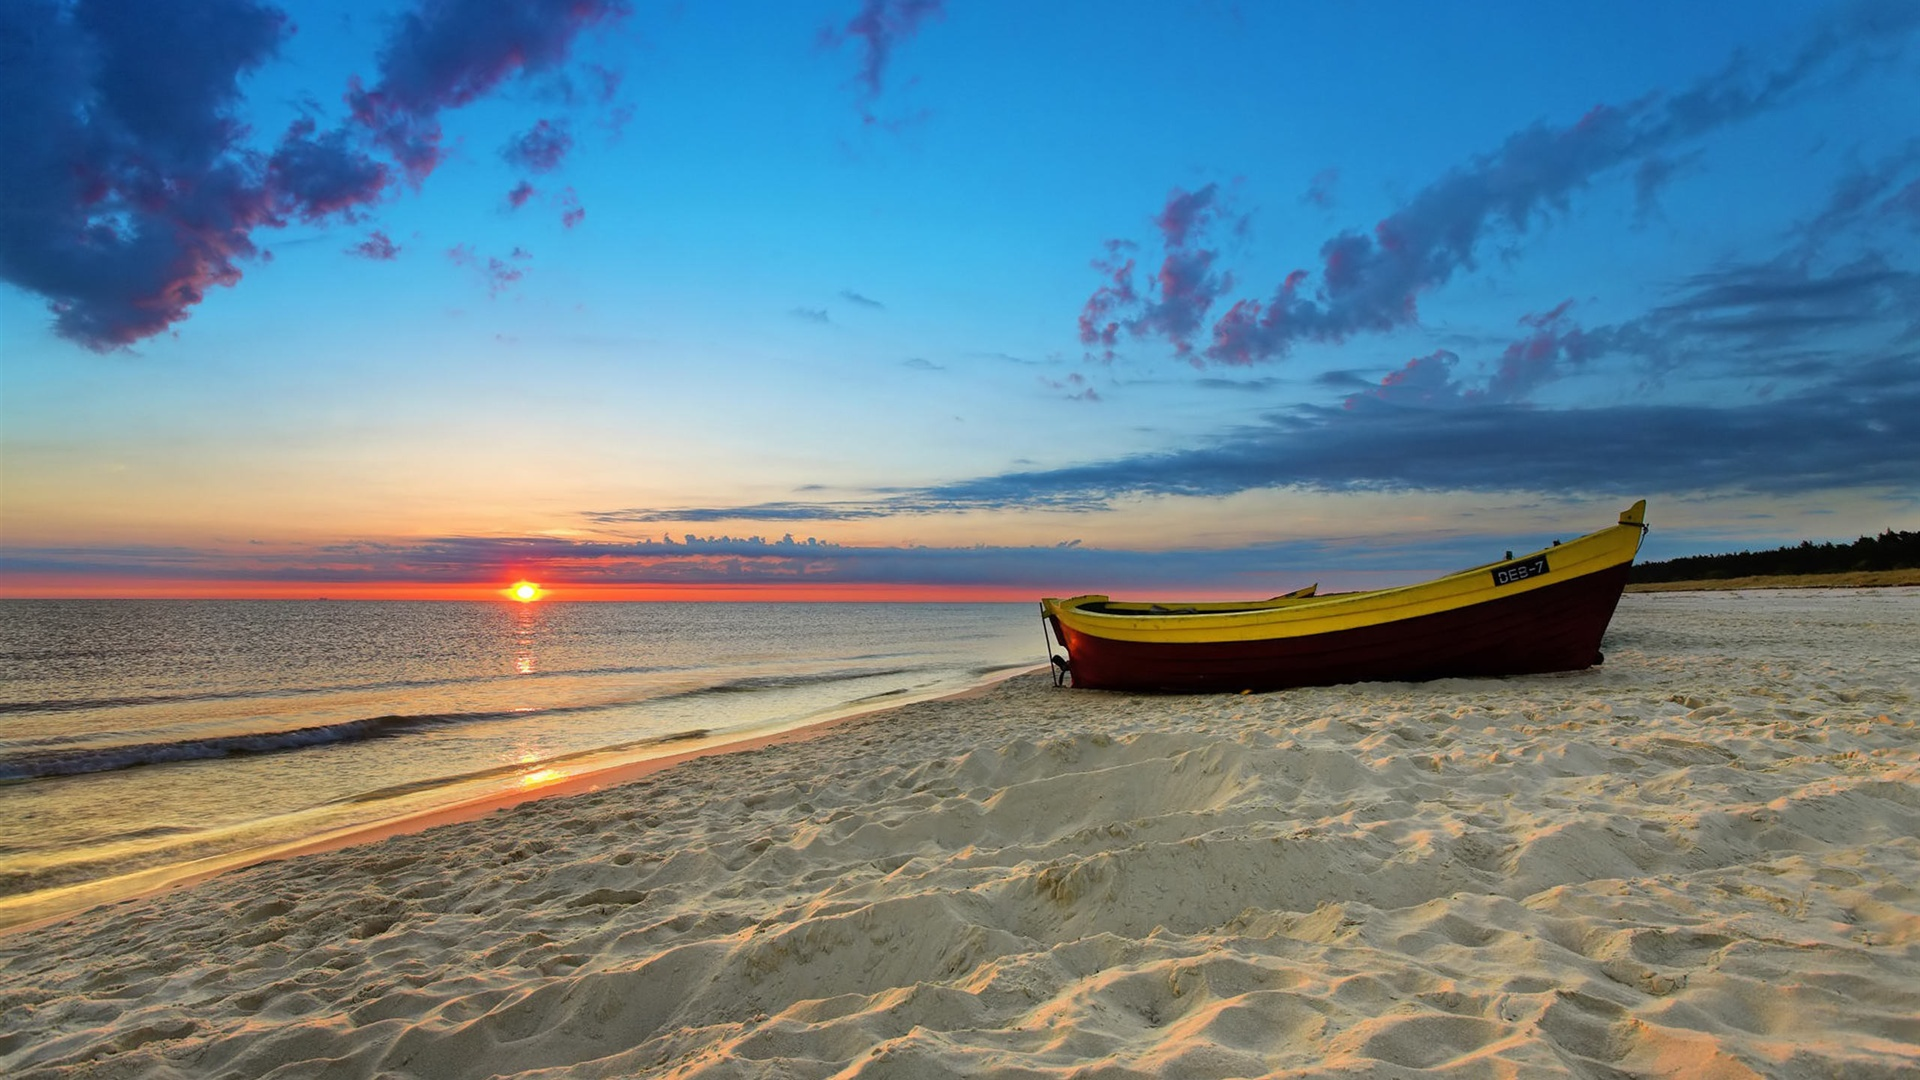 wallpaper sunset beach 2560x1600 hd picture, image